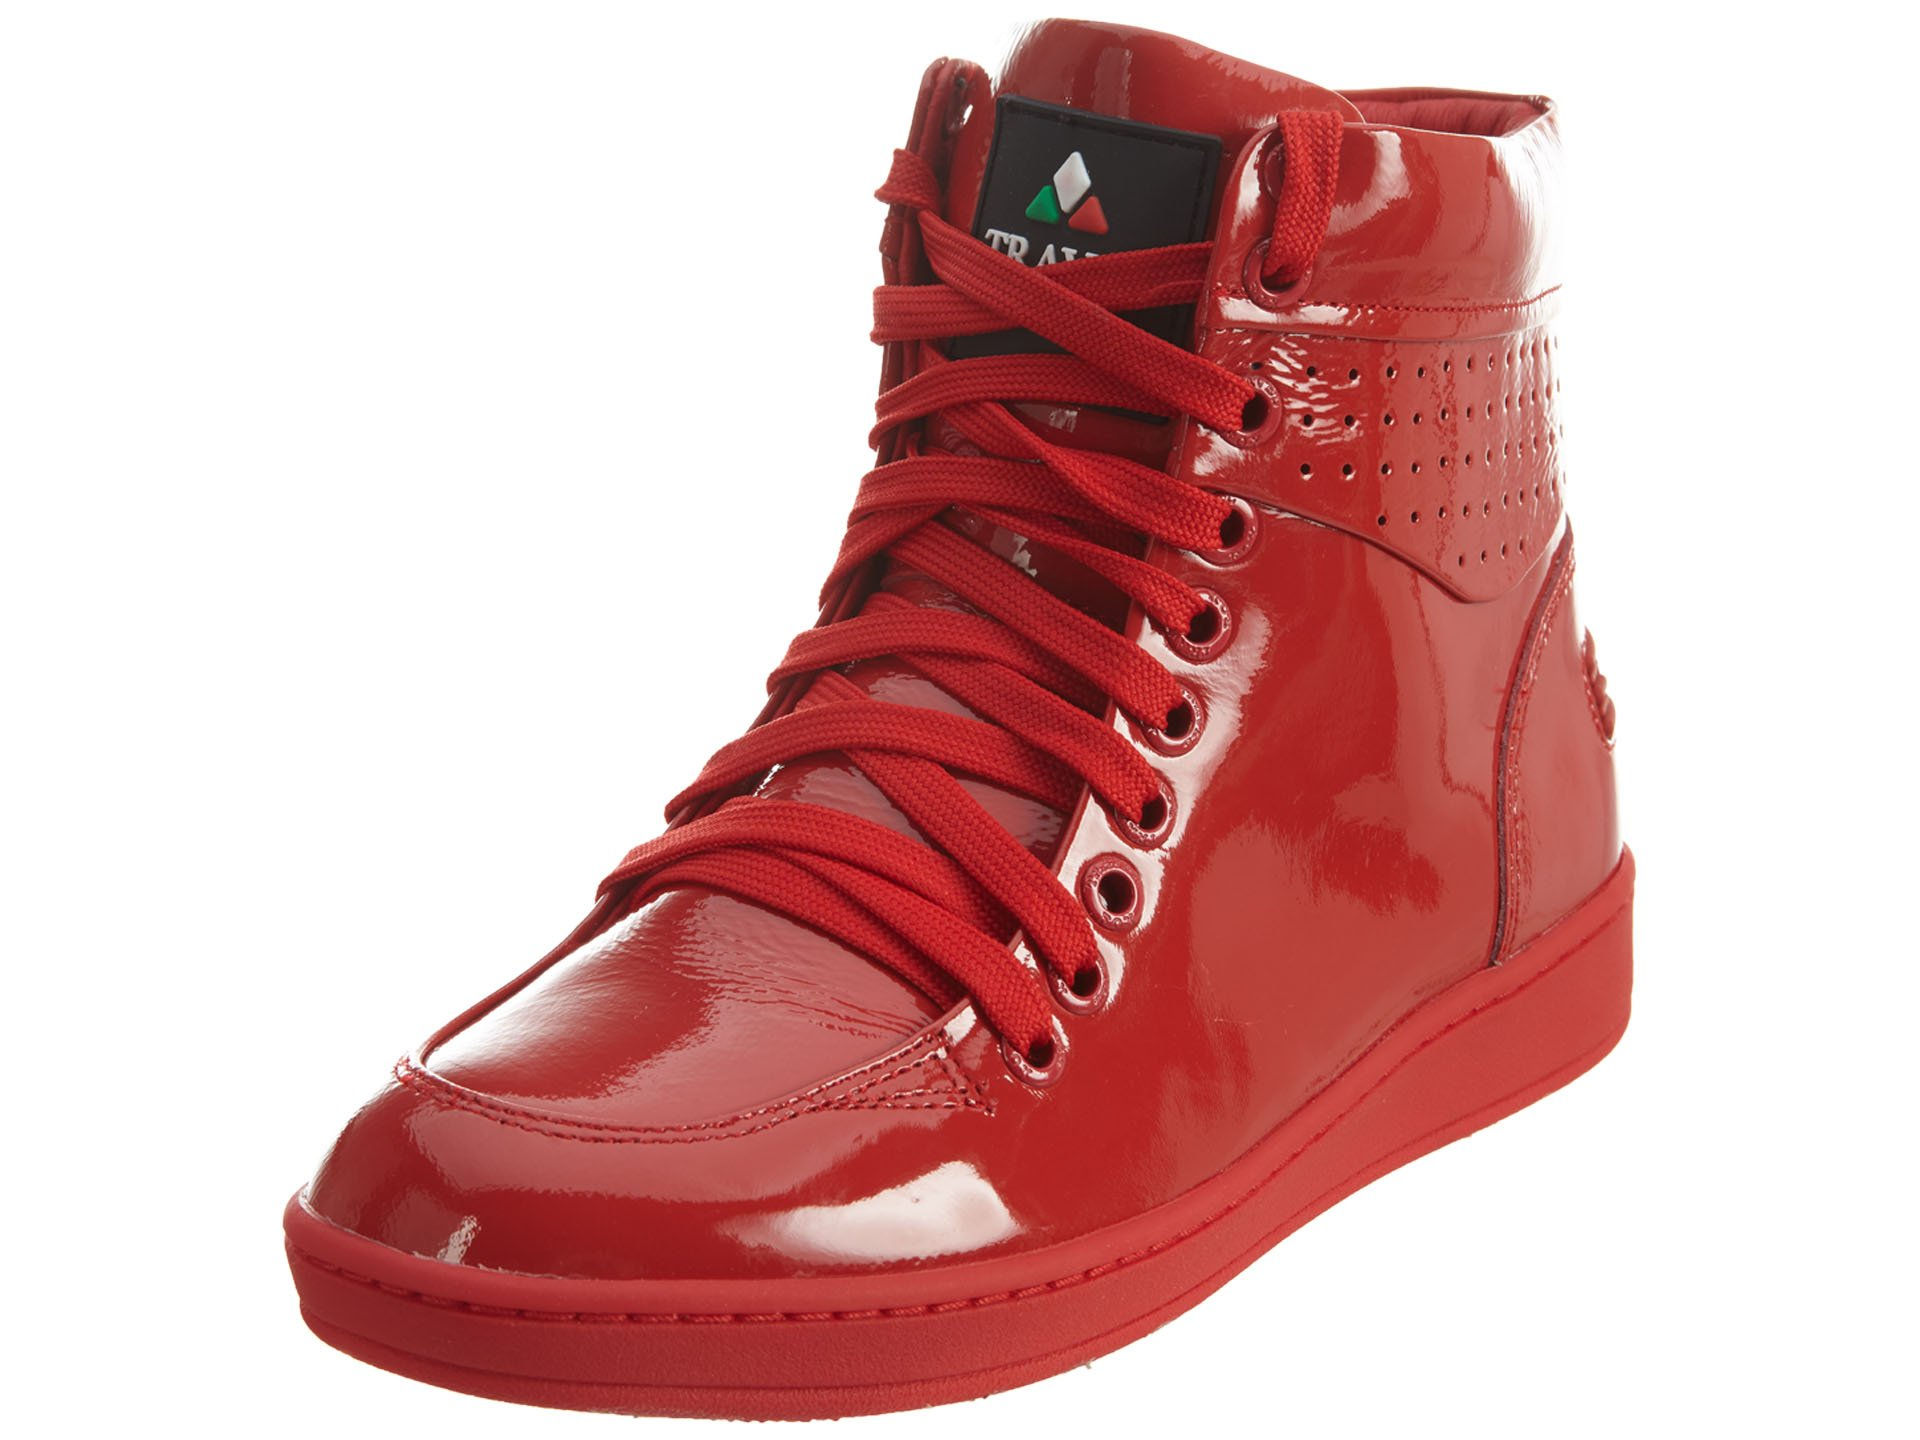 Travel Fox 900 Series Nappa Leather High Top Womens Style: 916301-404 Size: 40 by TRAVEL FOX